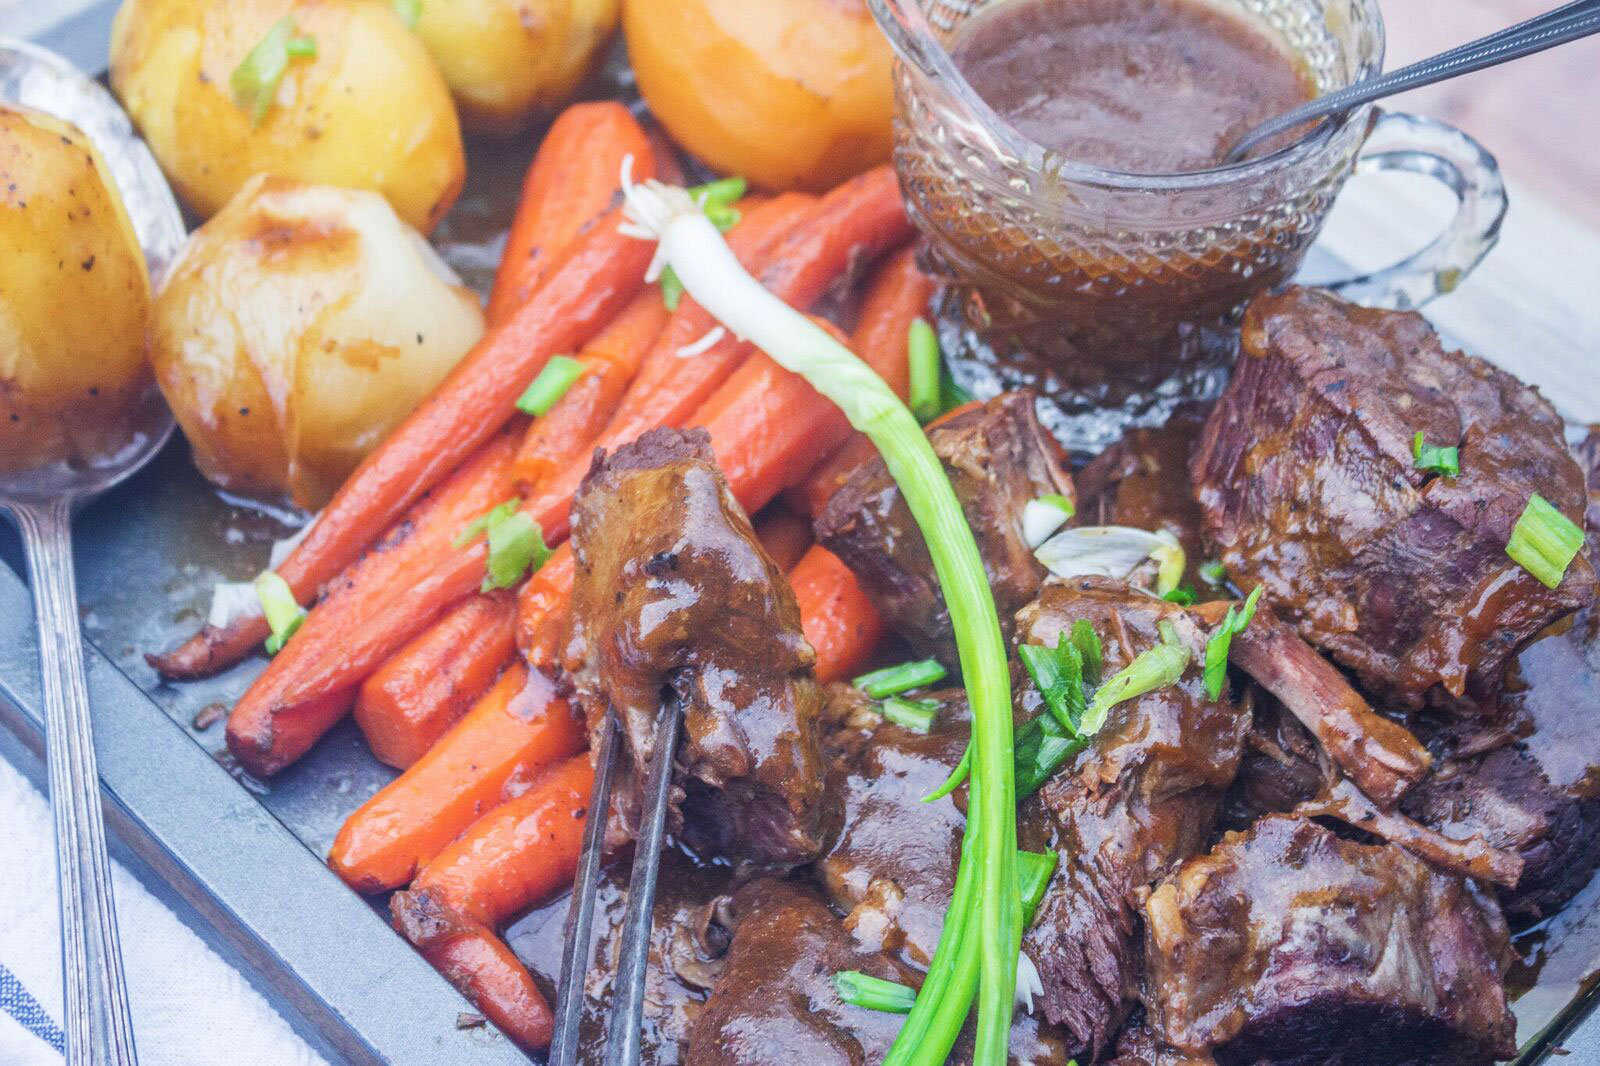 Jackie Garvin Old Fashioned Pot Roast with Vegetables and Gravy